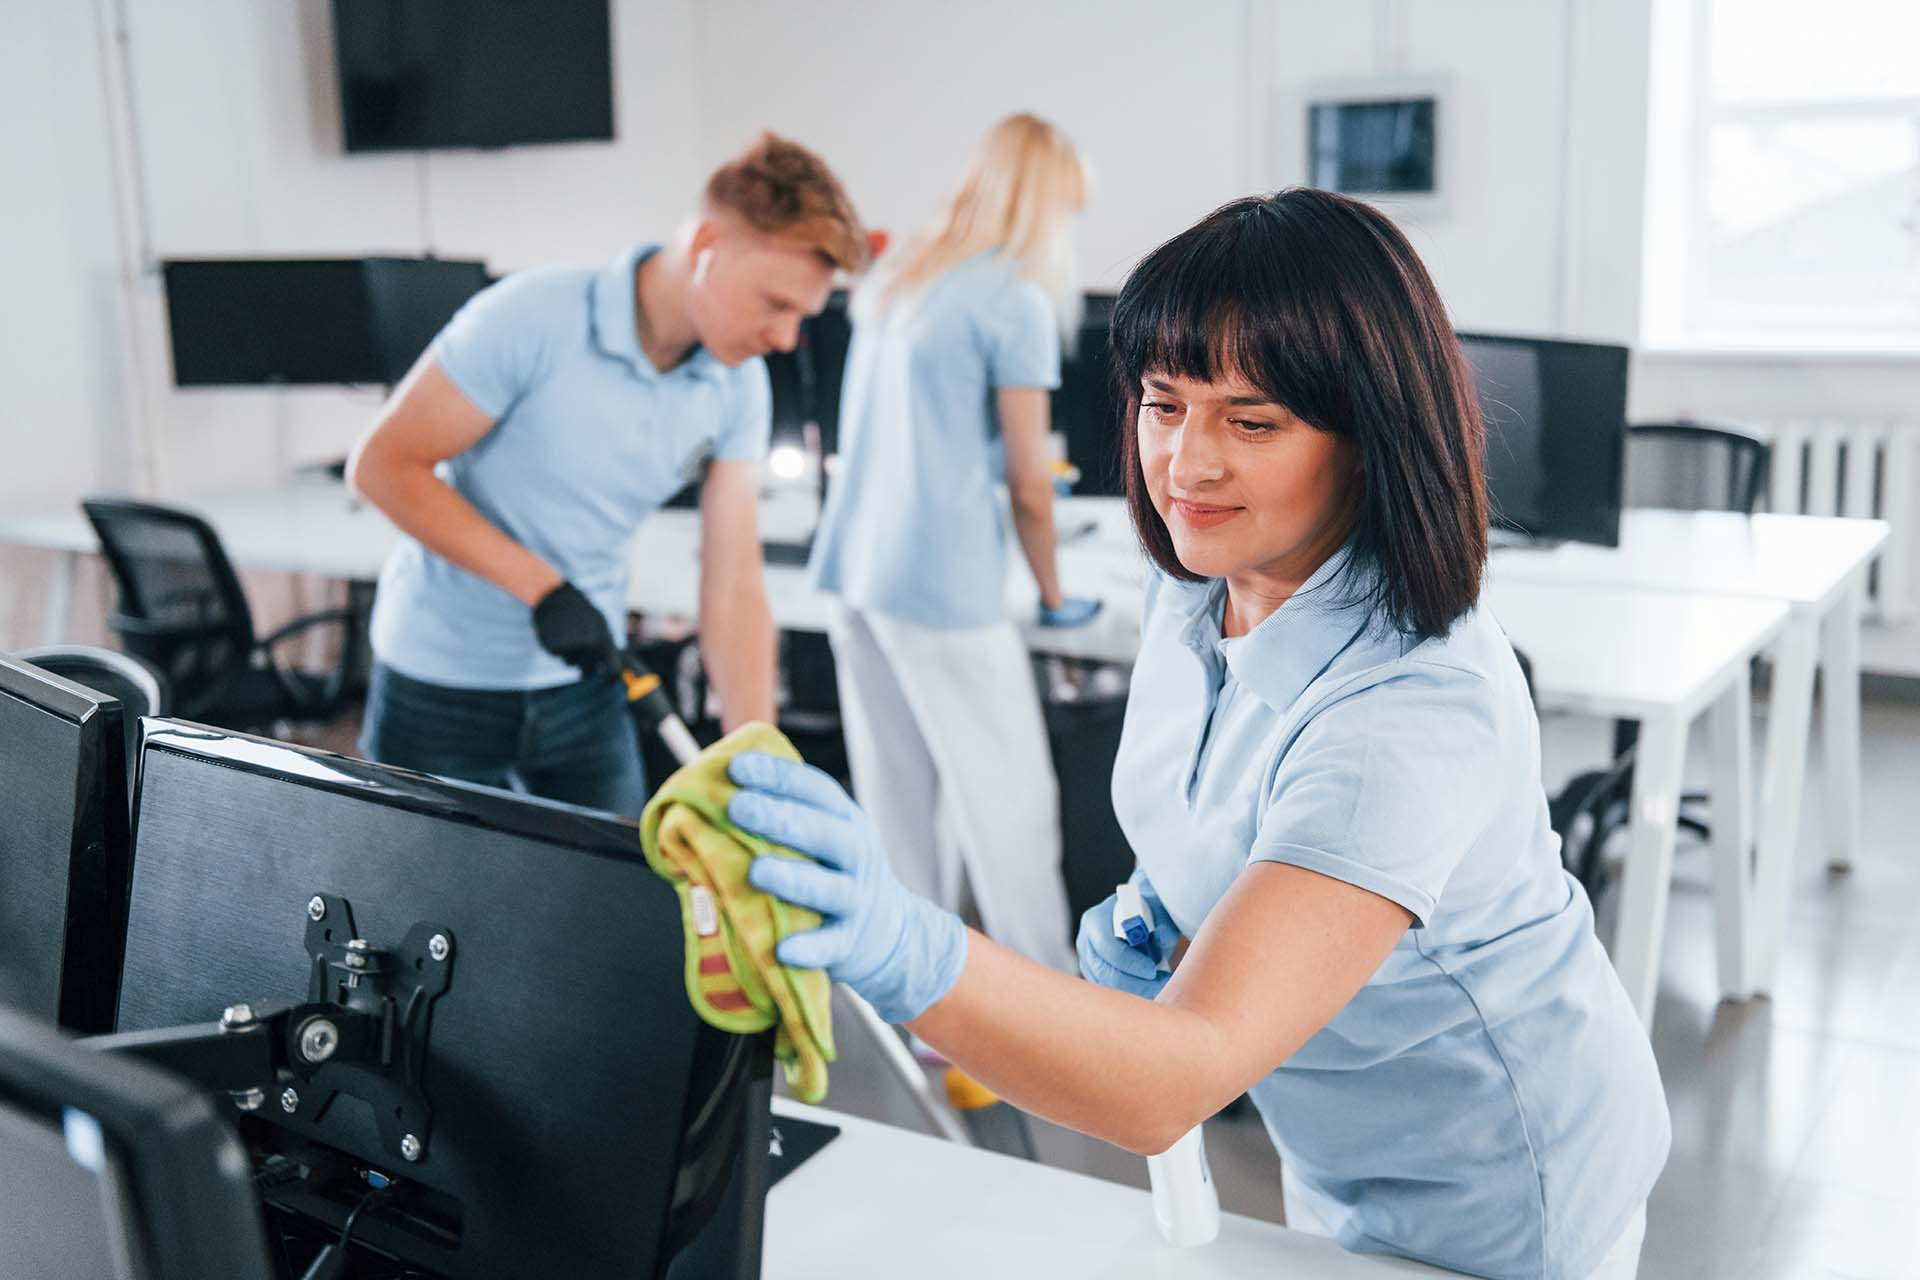 5 reasons why a clean workplace is good for business